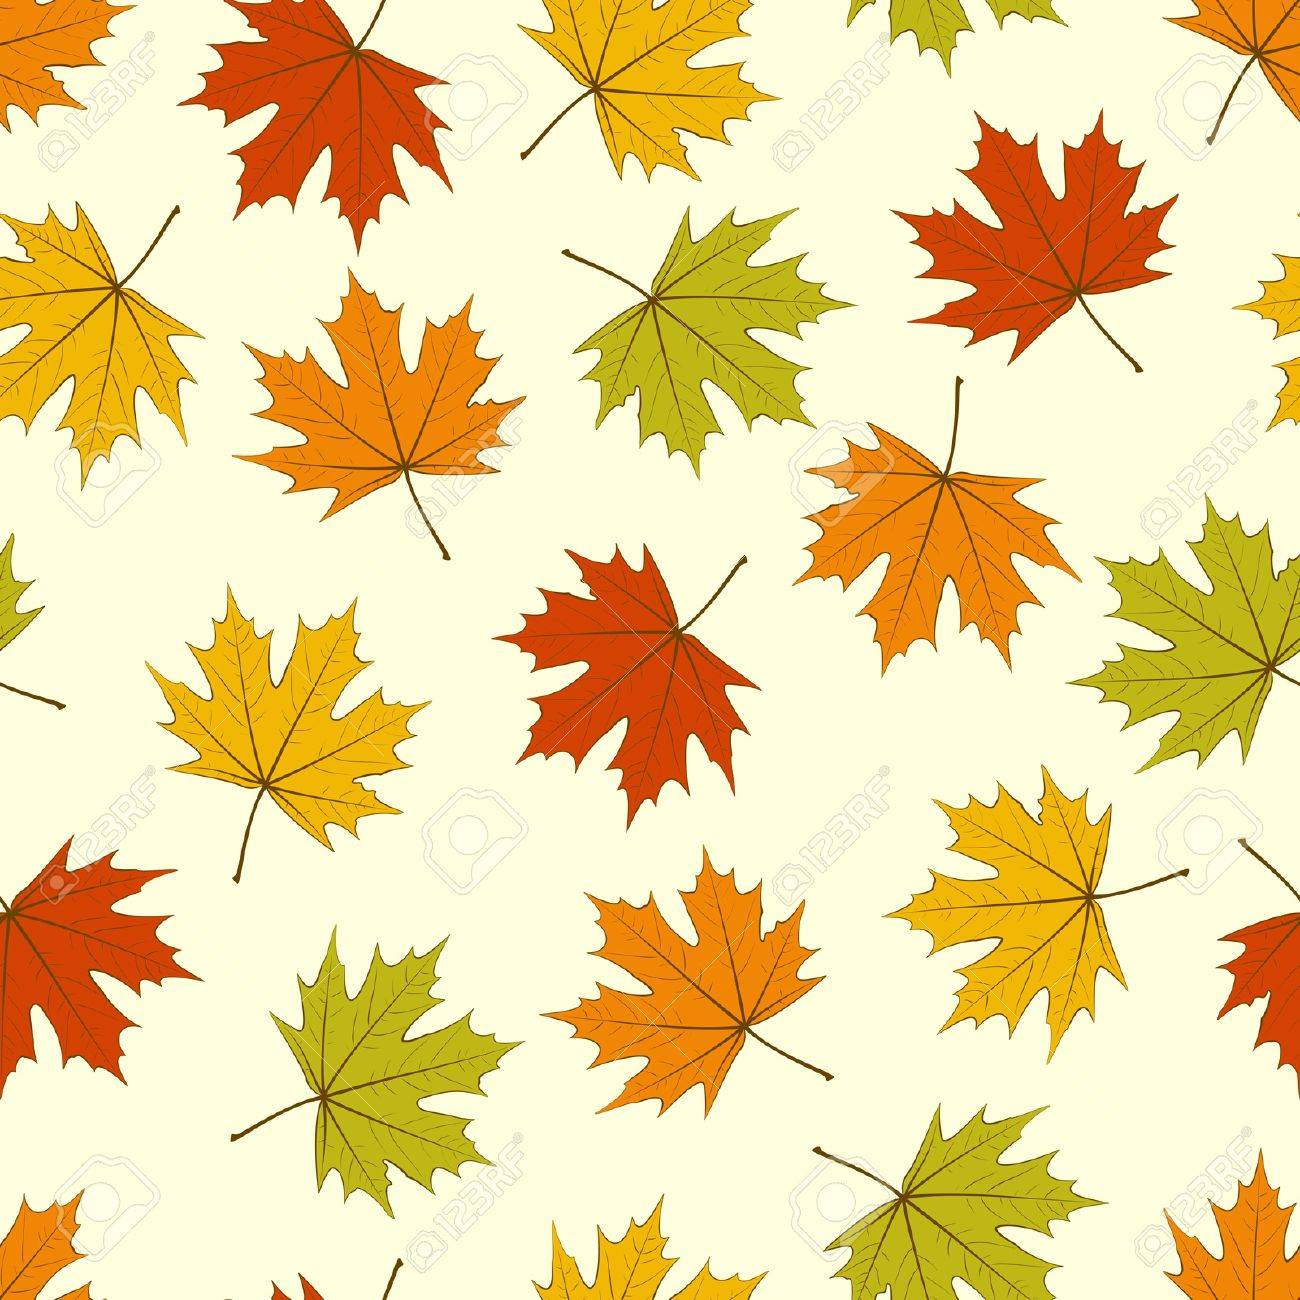 Seamless background - autumnal maple leaves. EPS10 vector. Stock Vector - 15064135